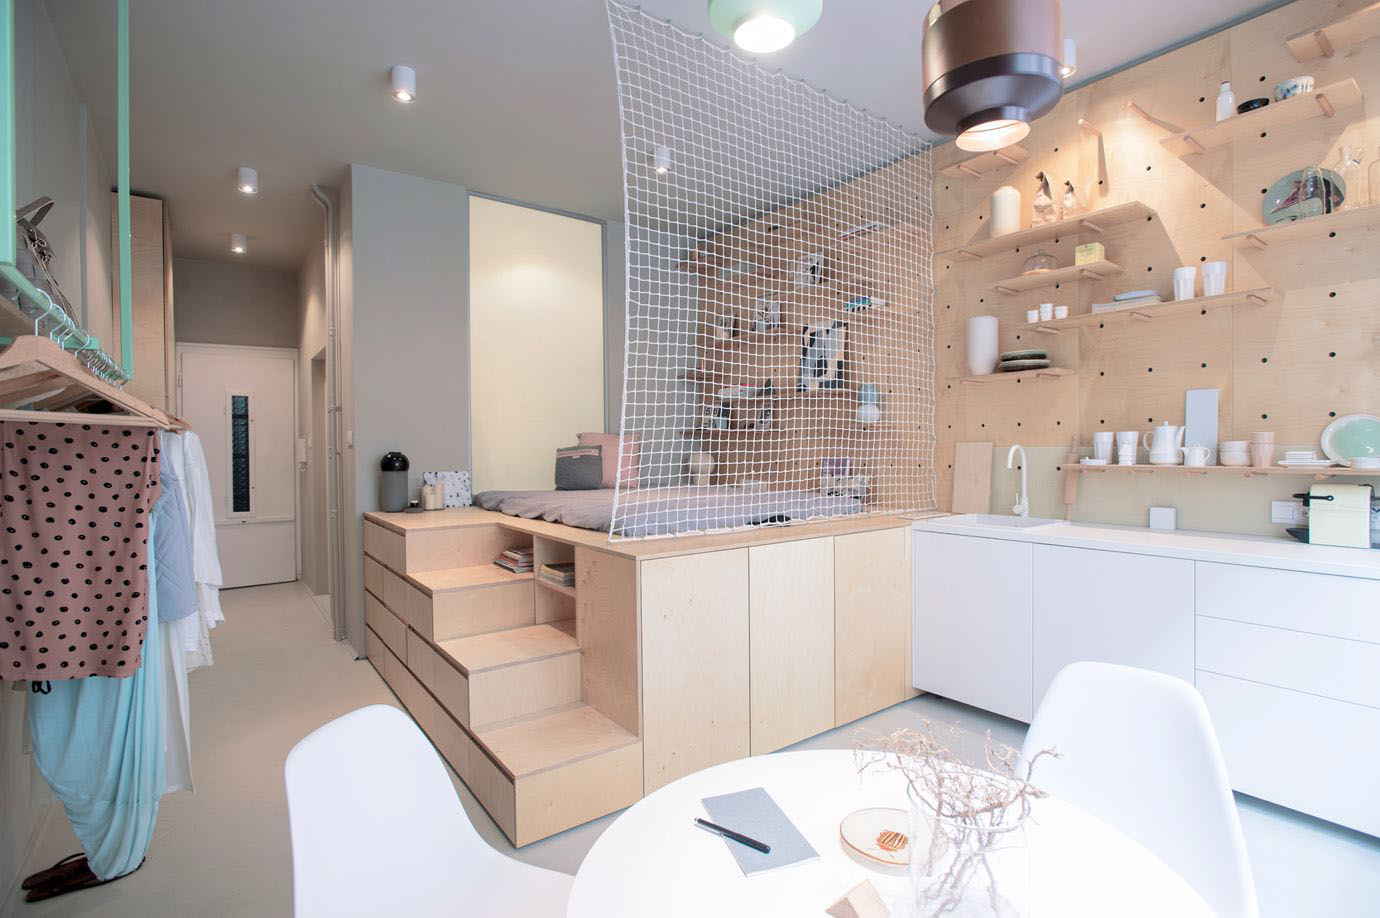 Studio Apartment Sleeping Solutions Tiny Studio Apartment With Multifunctional Sleeping And